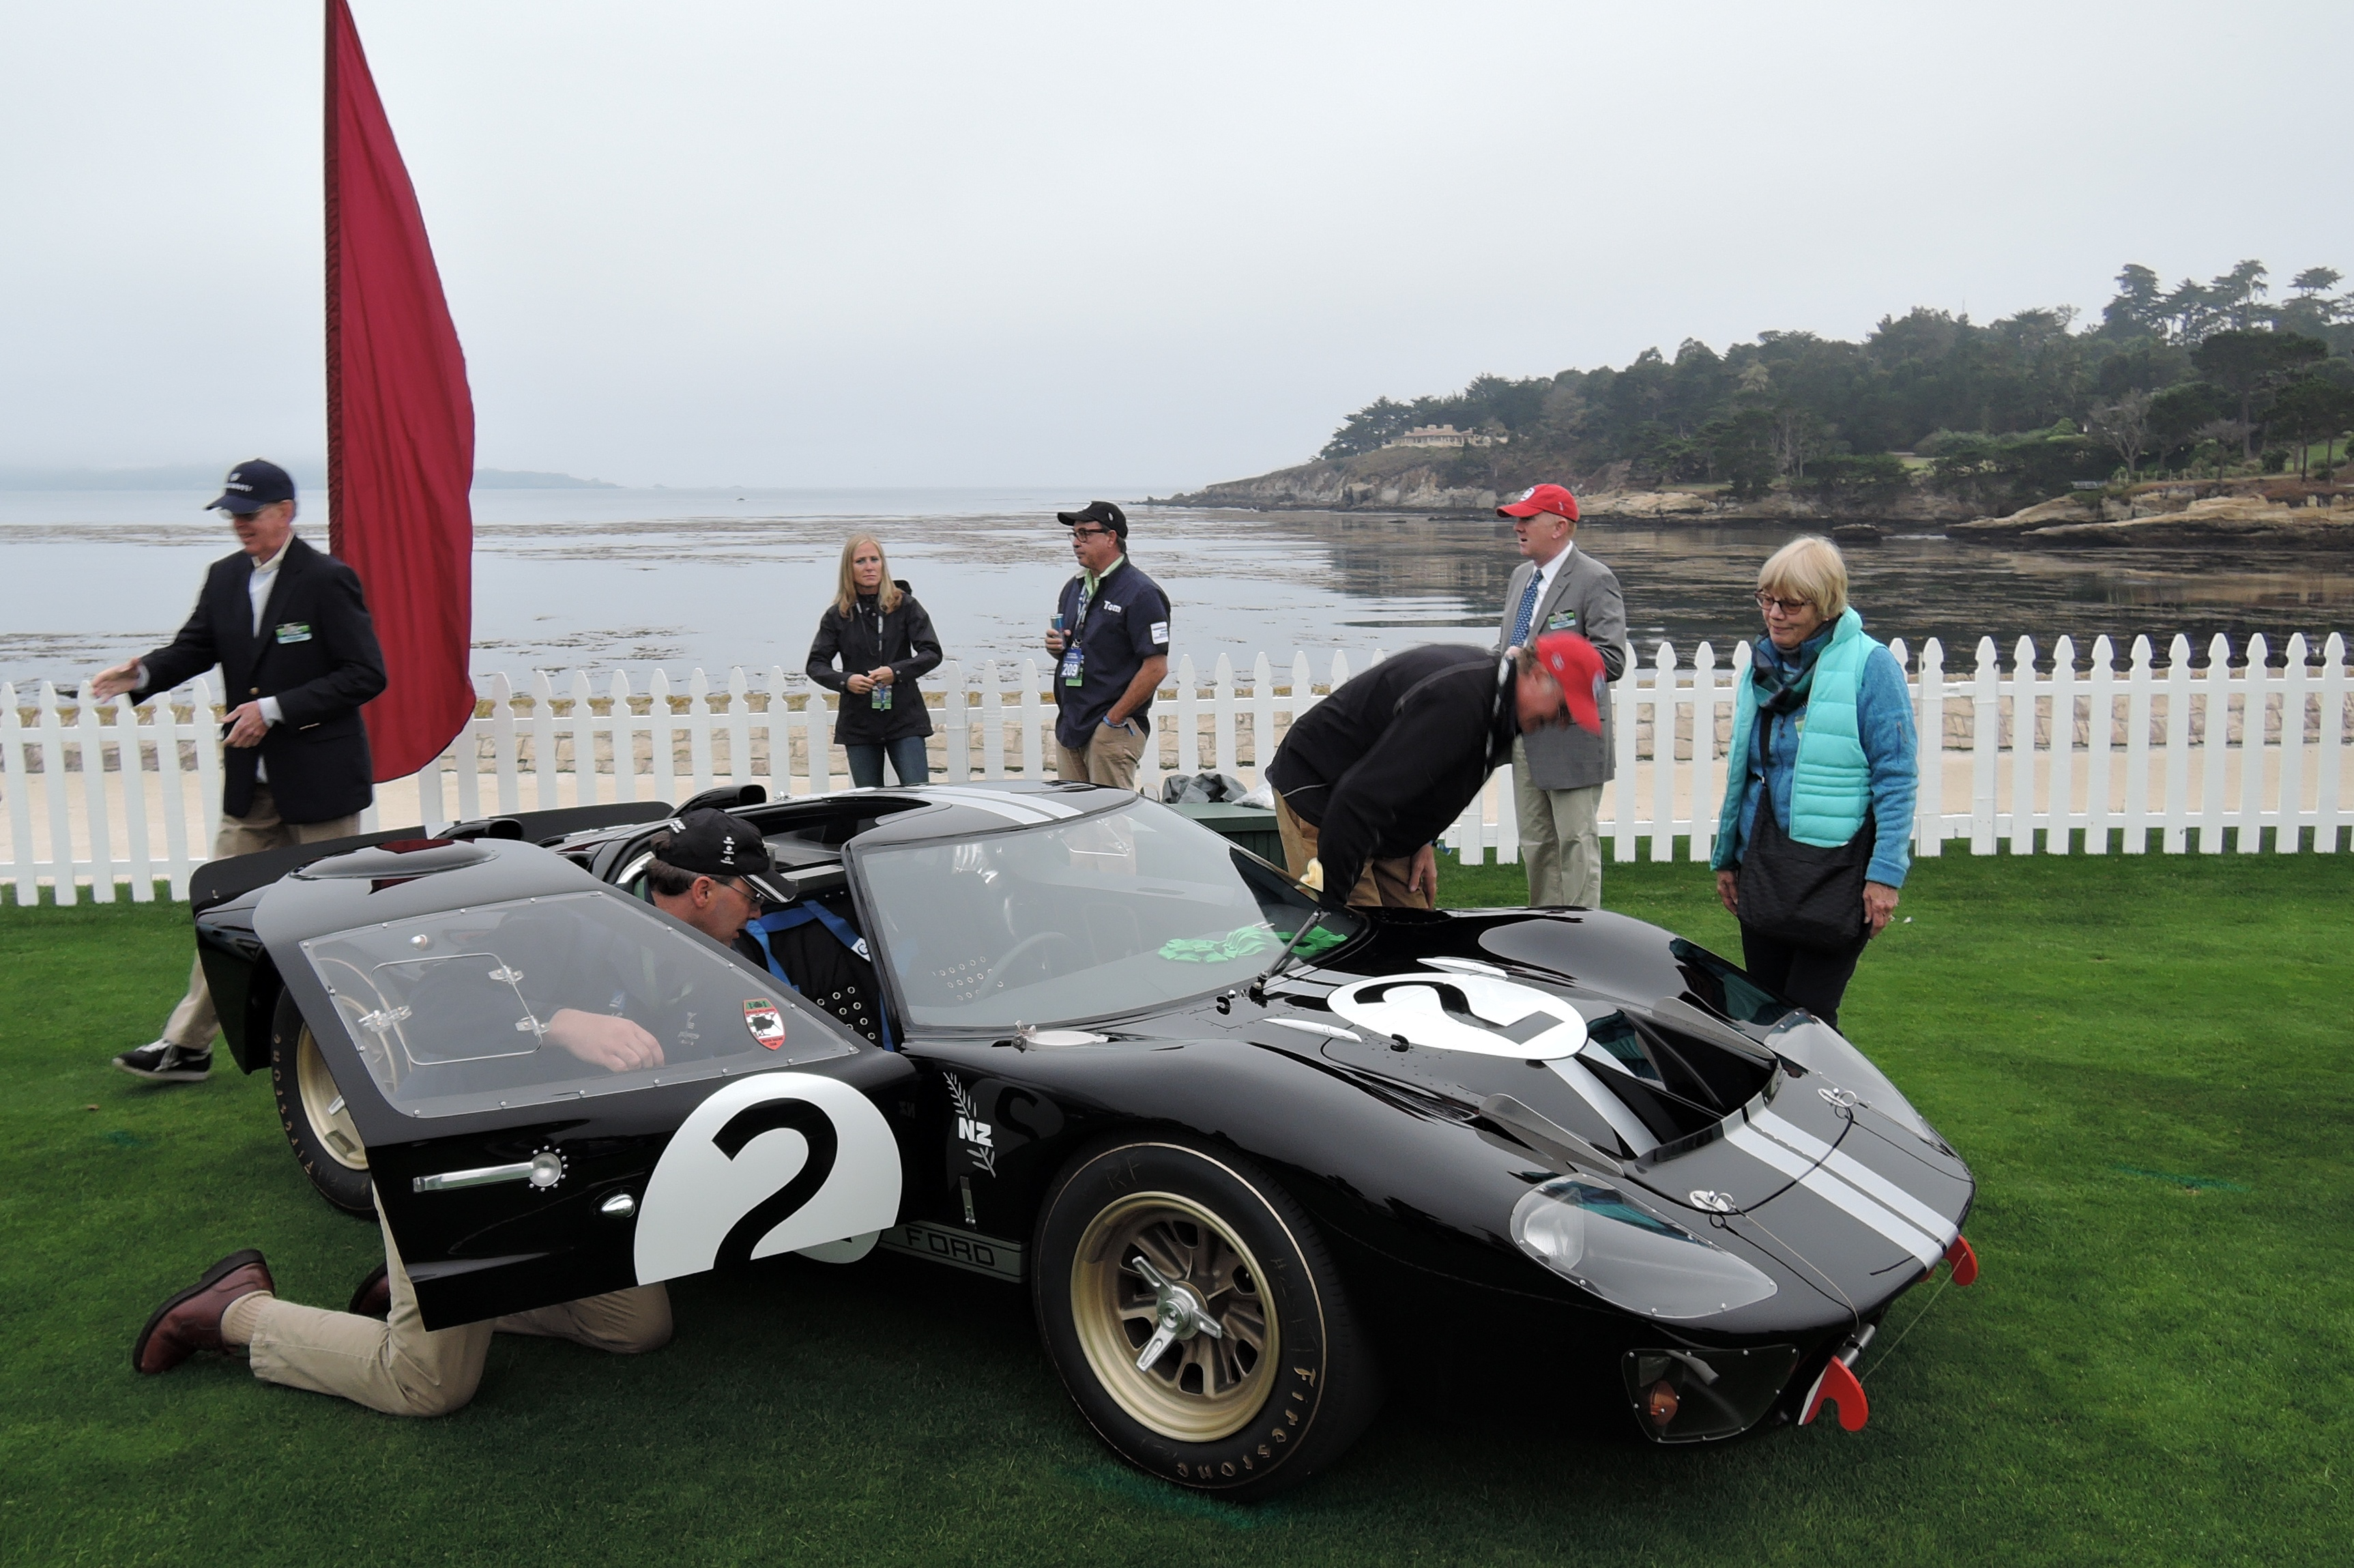 No. 2 1966 Ford GT40 P/1046 MKII - Pebble Beach Concours d'Elegance 2016